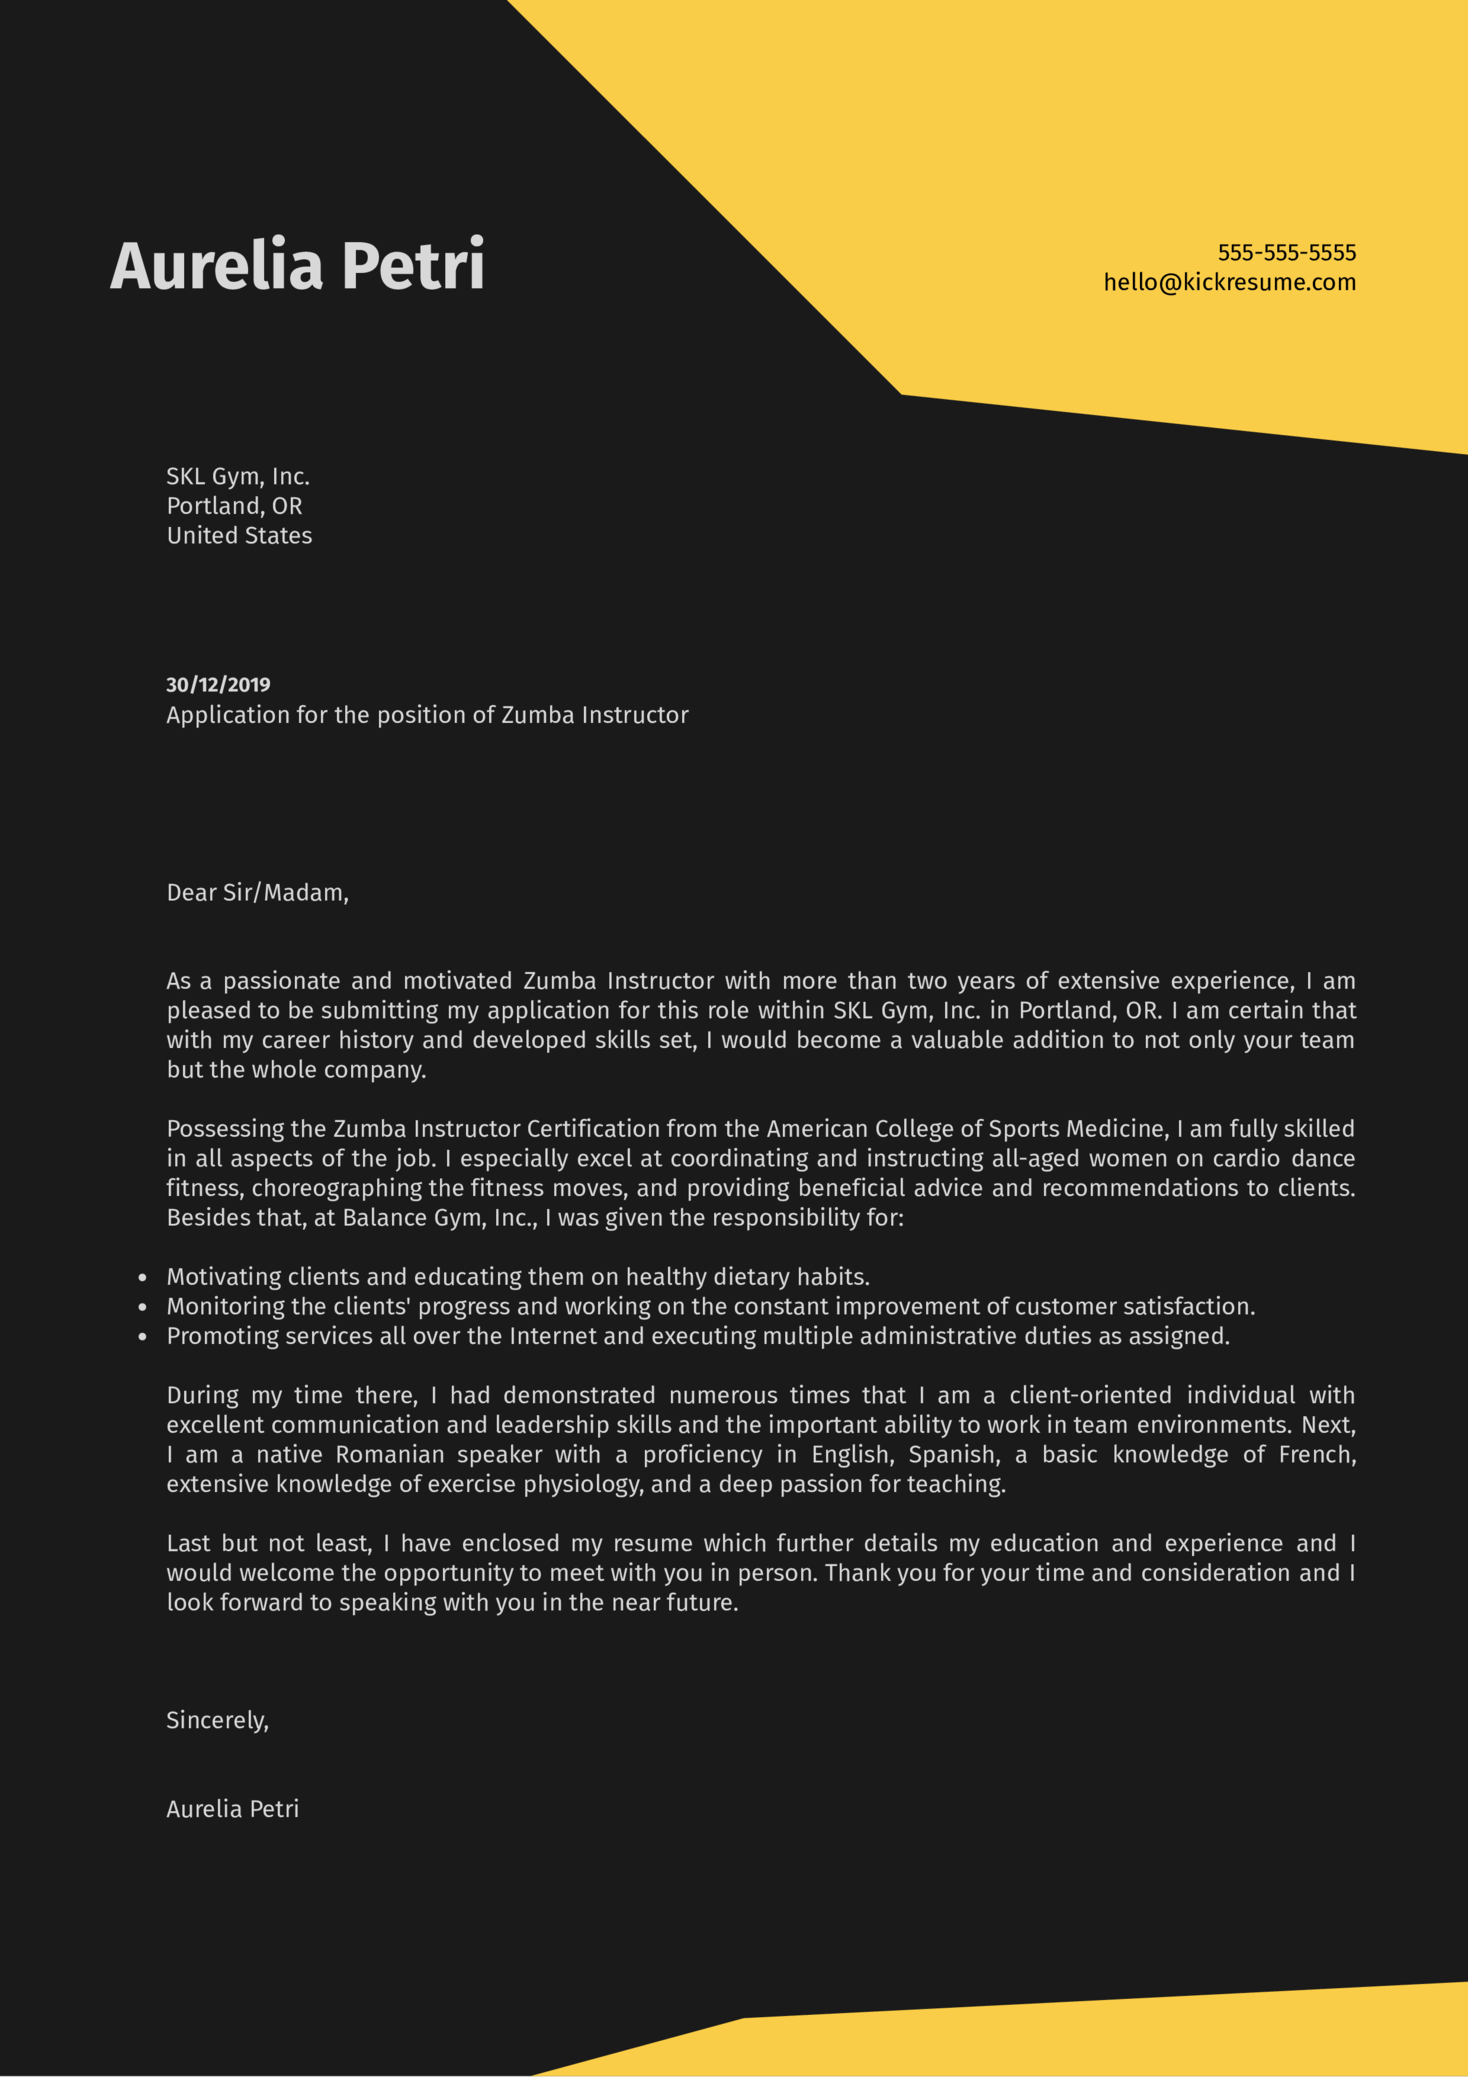 Zumba Instructor Cover Letter Sample